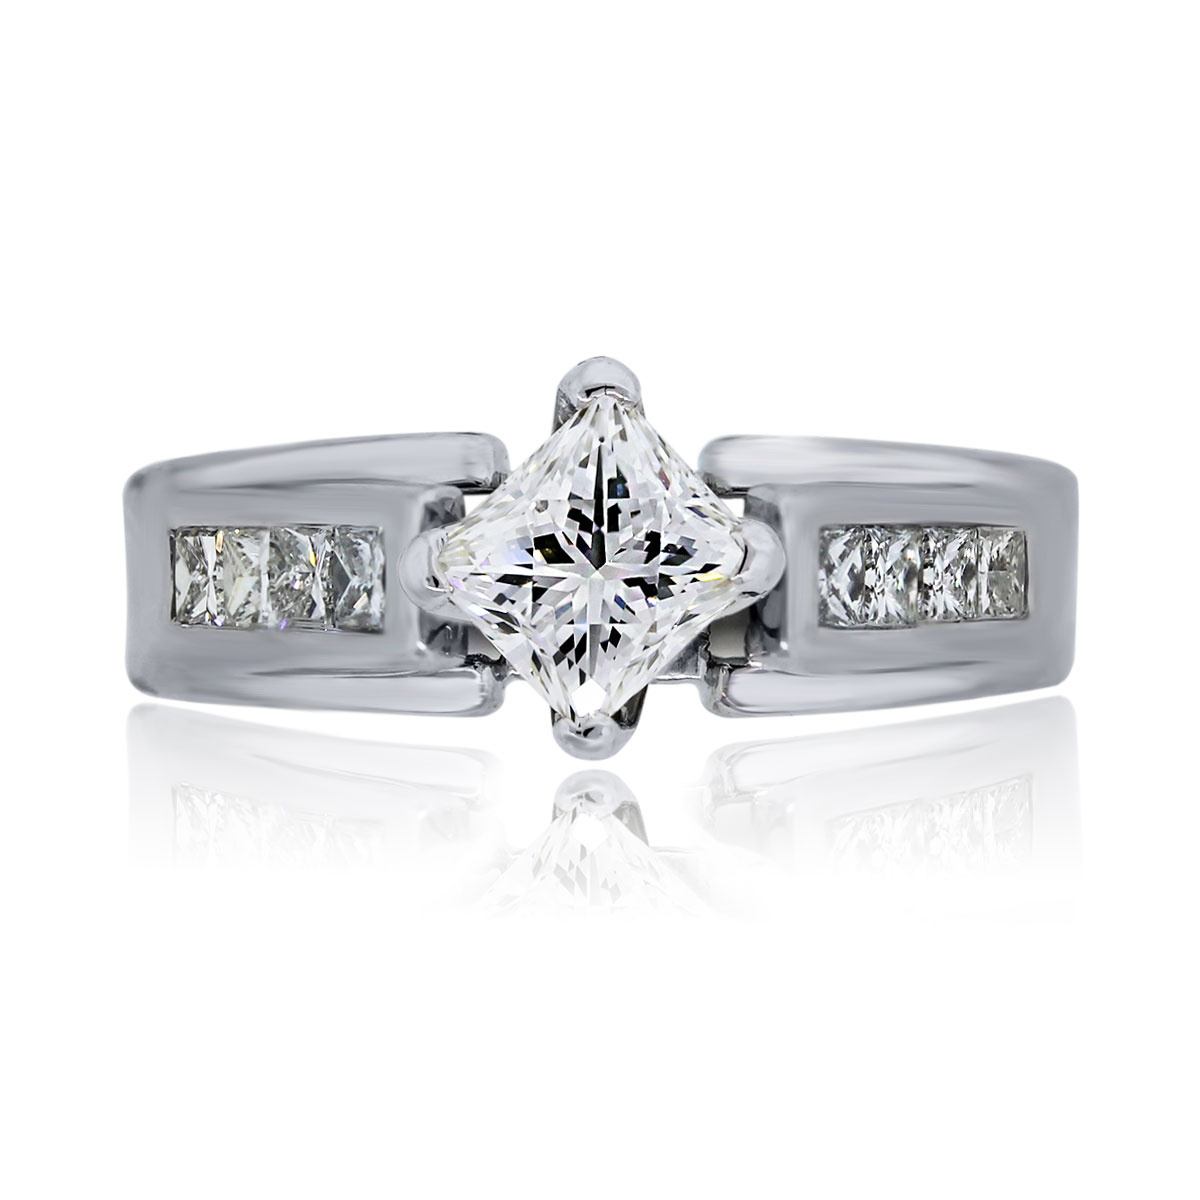 You are viewing this 14k White Gold Radiant Princess Cut Diamond Engagement Ring!